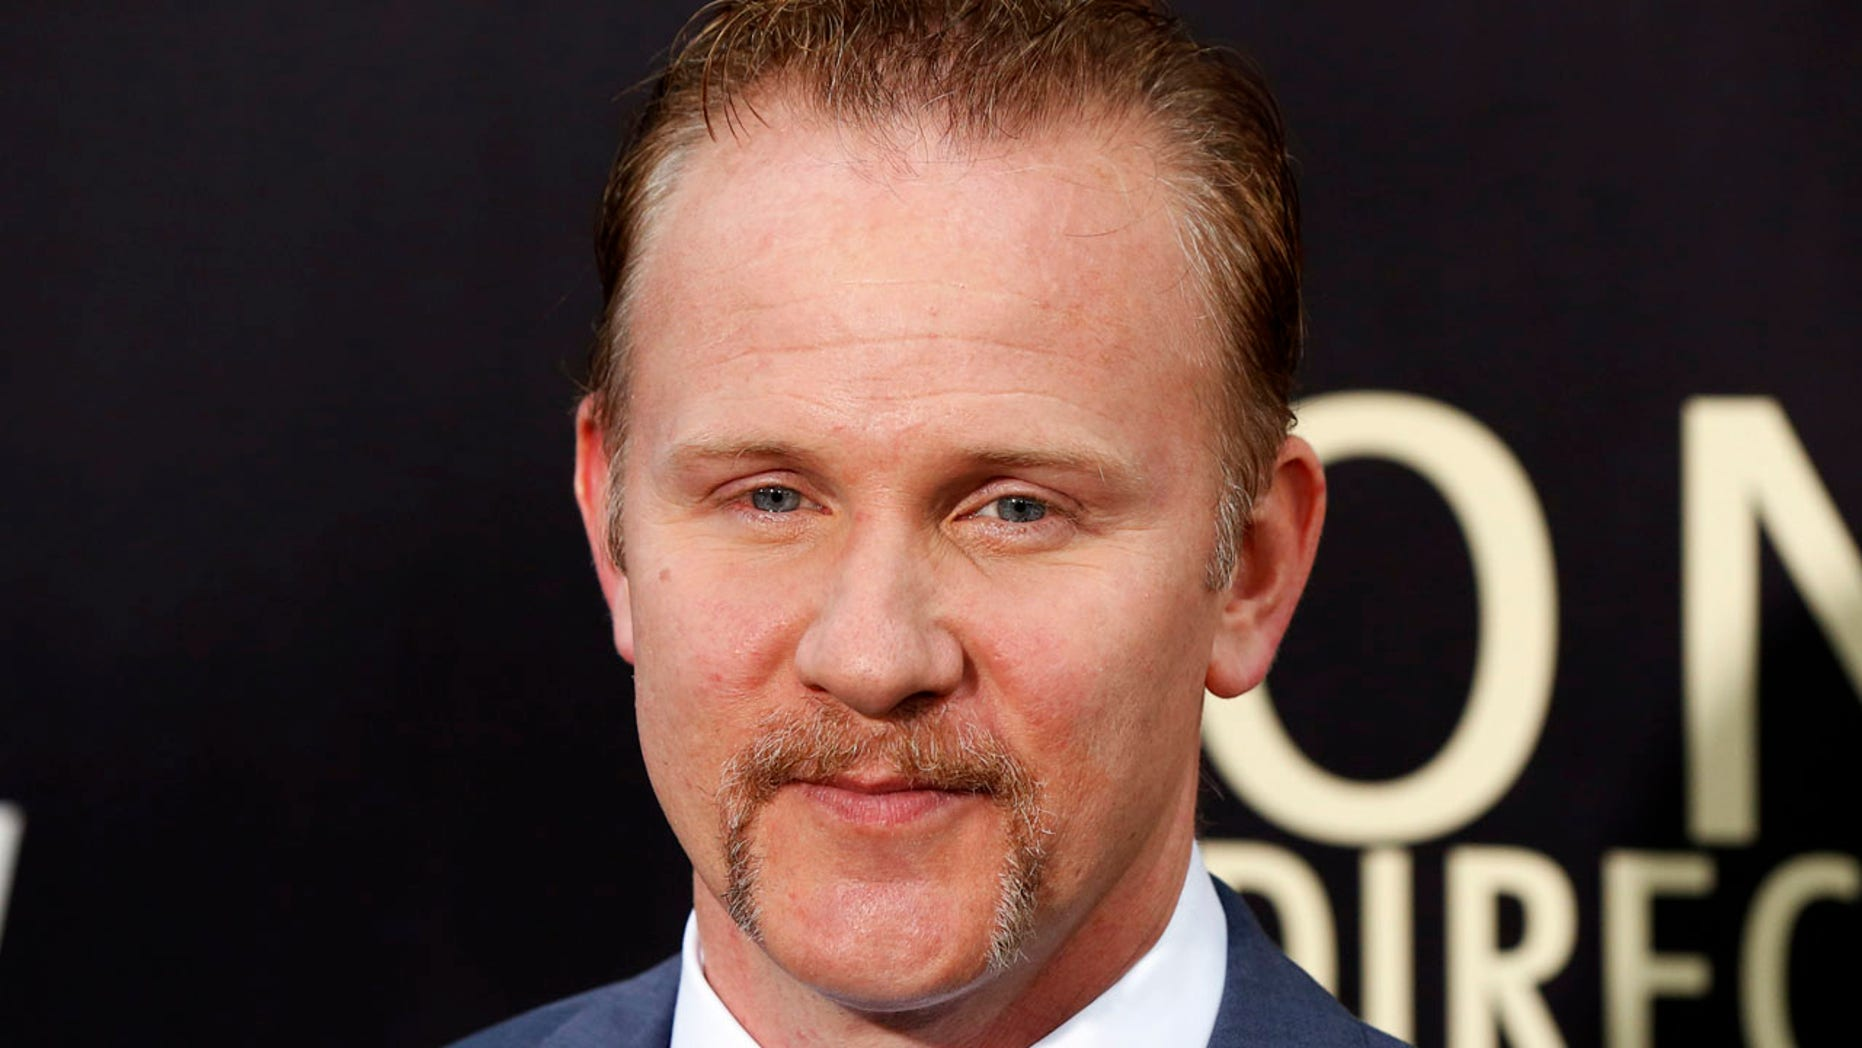 FILE: Morgan Spurlock seen in New York. He recently posted on social media that he is 'part of the problem' of sexual misconduct.